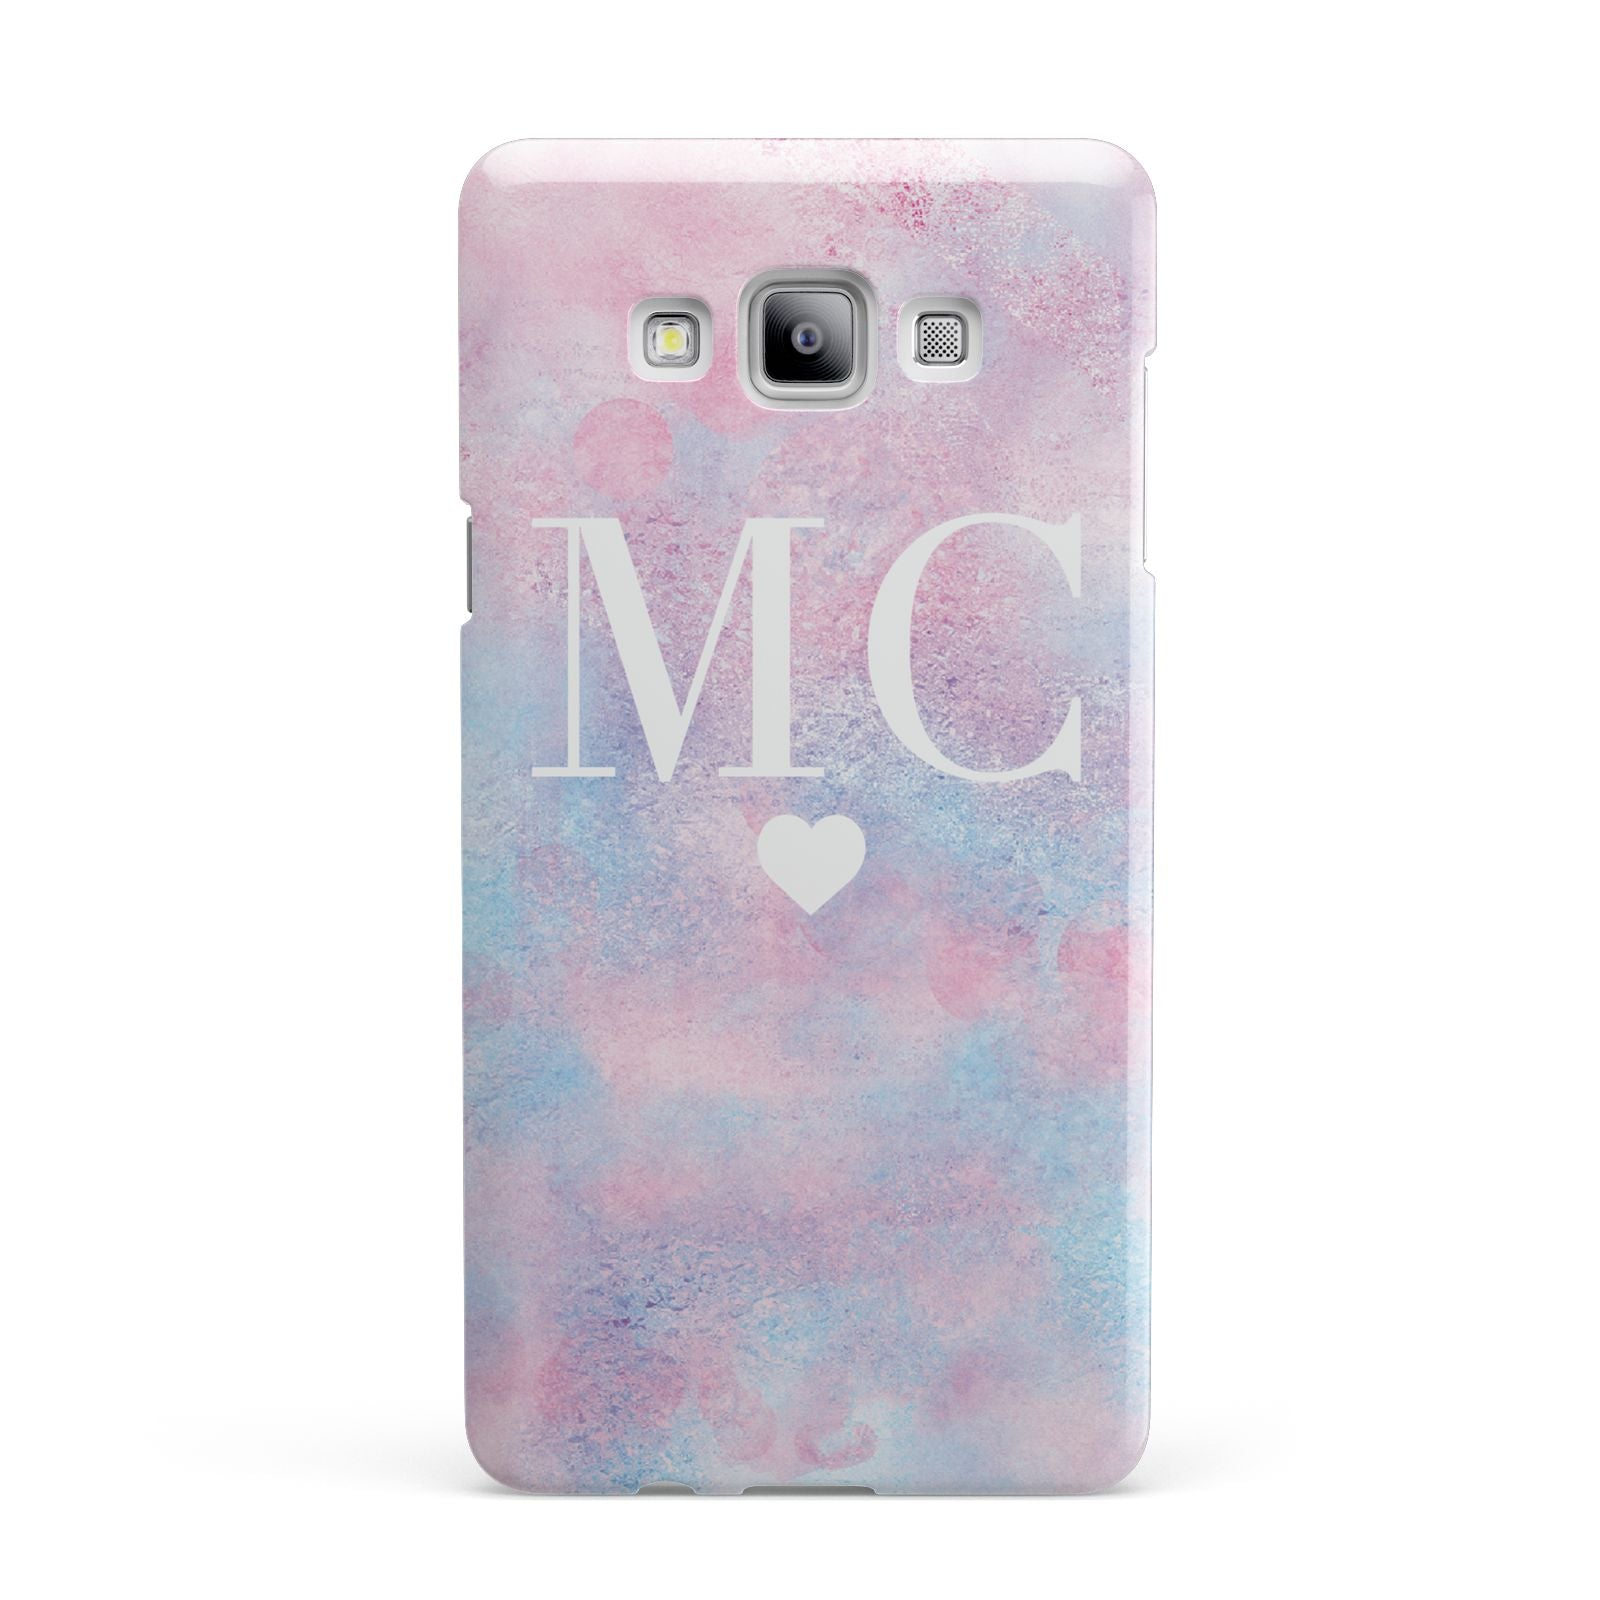 Personalised Cotton Candy Marble Initials Samsung Galaxy A7 2015 Case